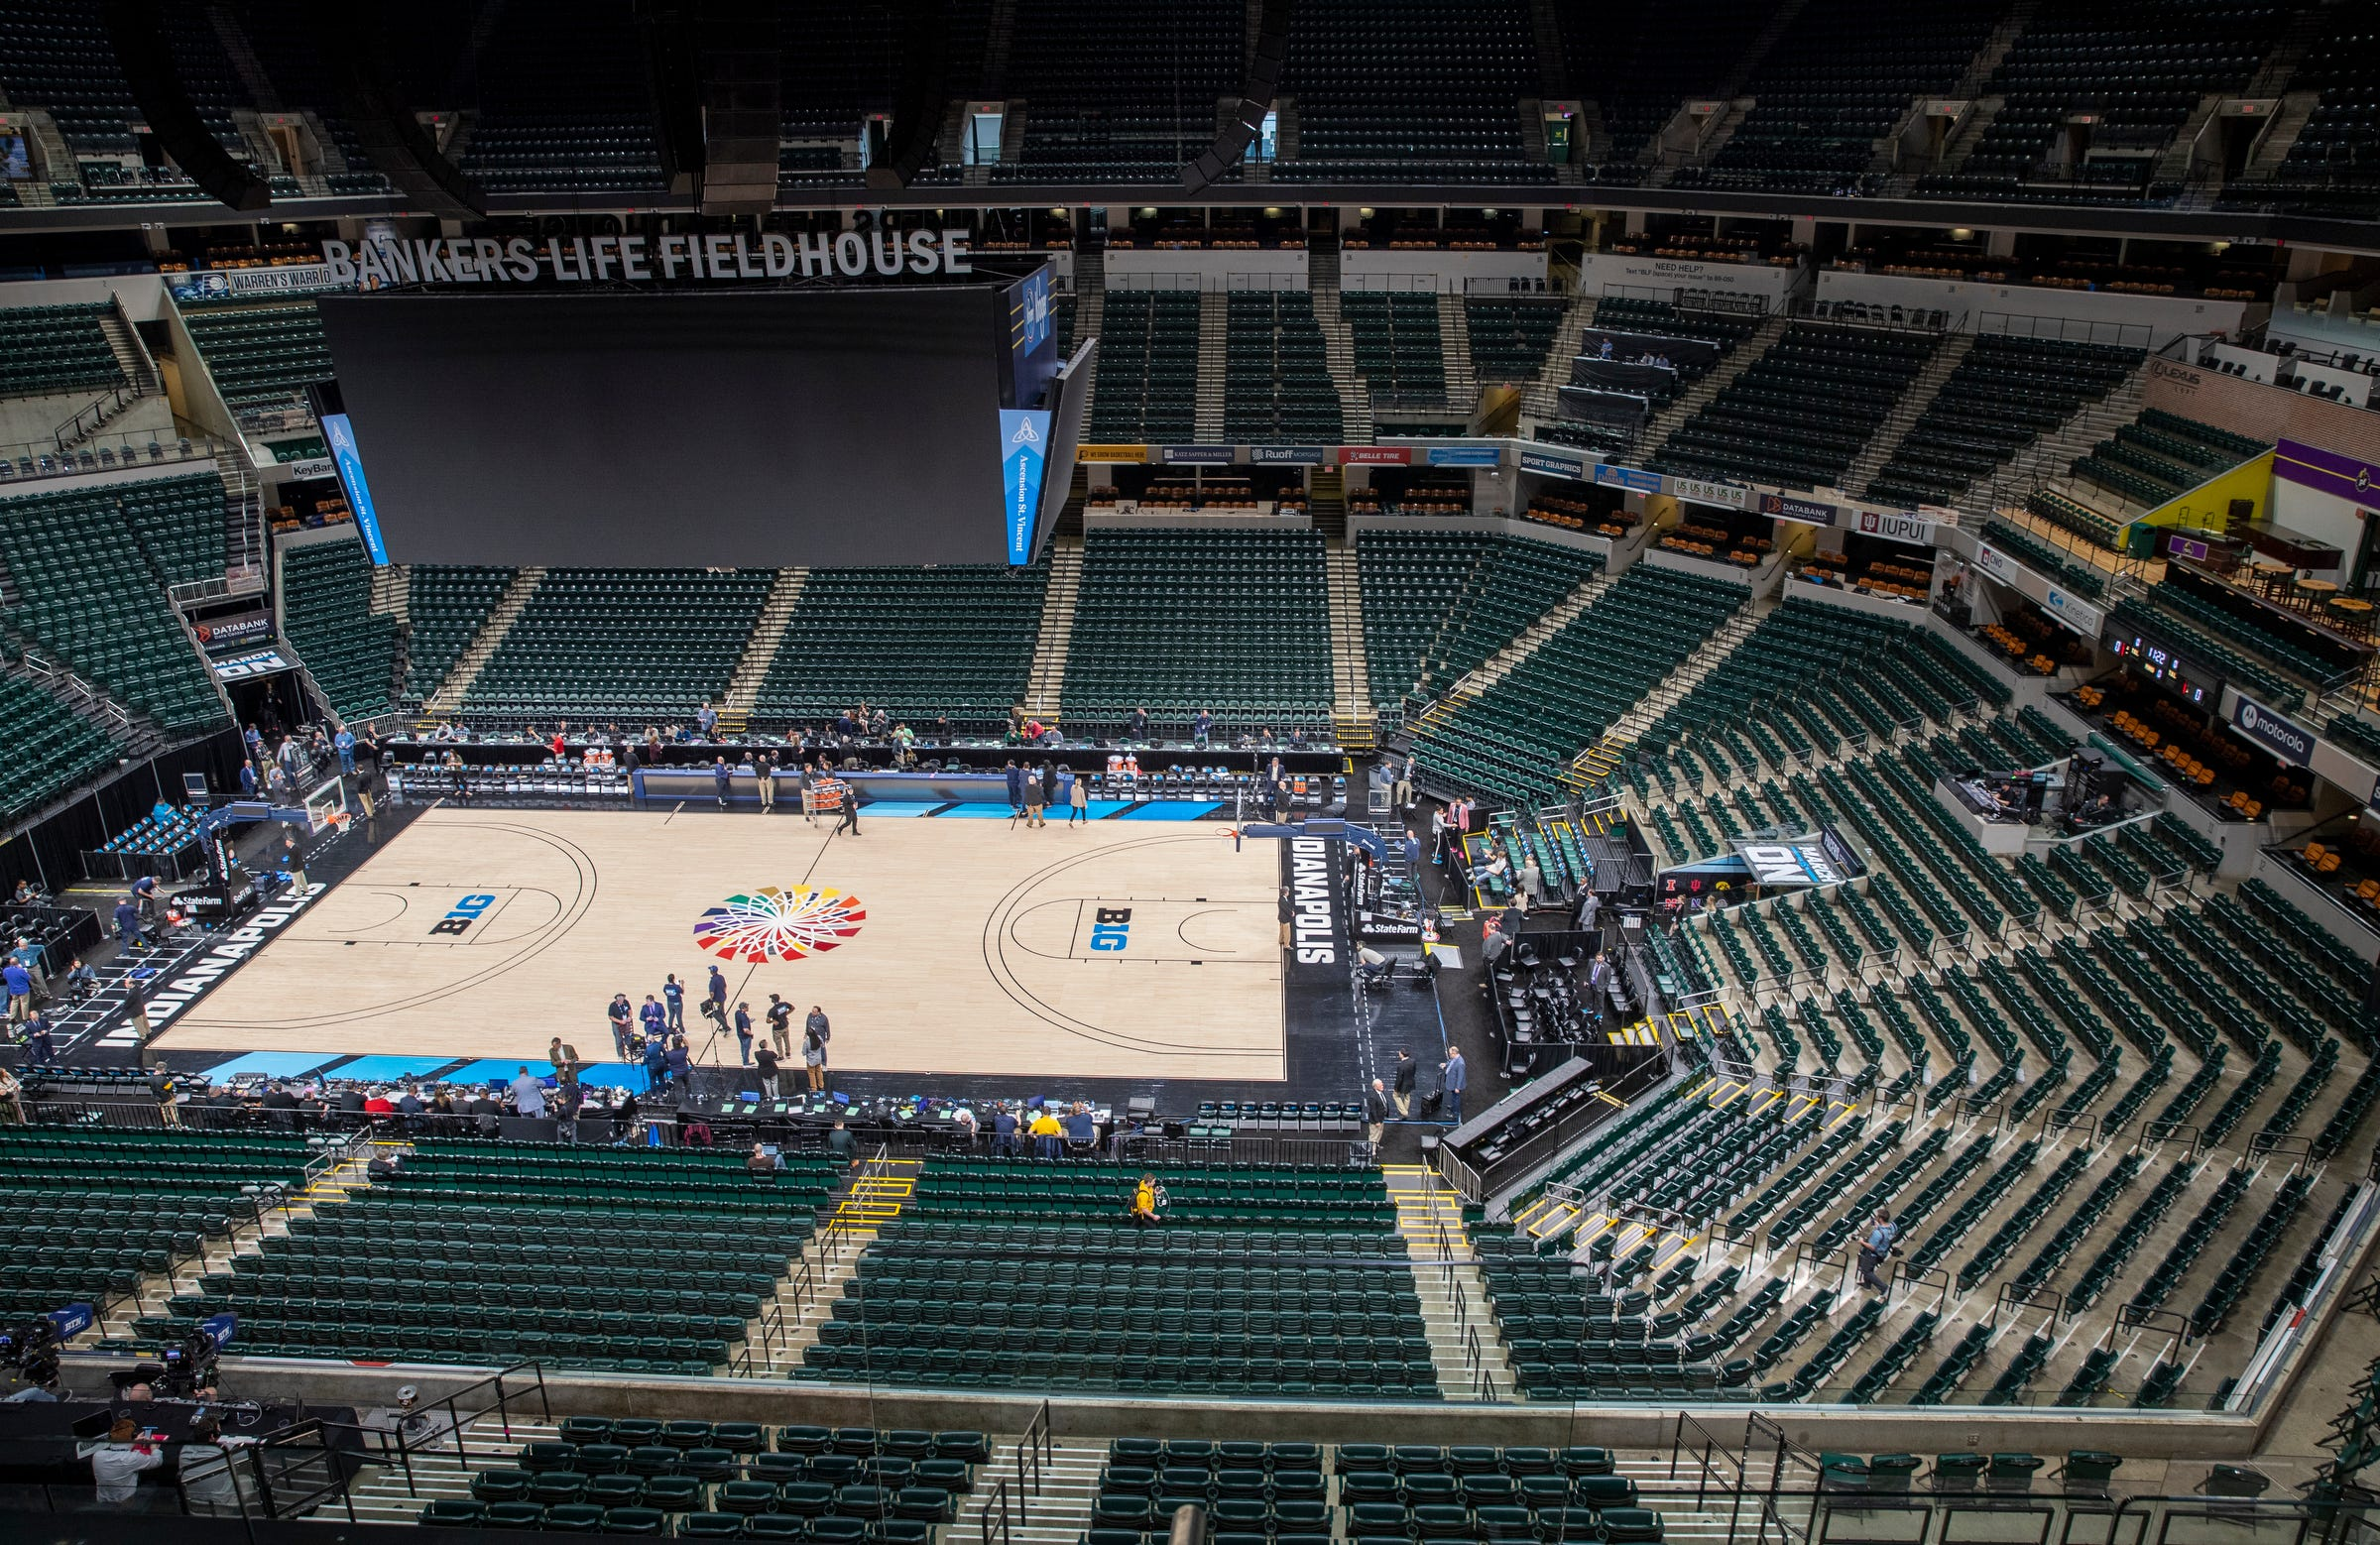 The virtually empty Bankers Life Fieldhouse moments after the remainder of the Big Ten Men's Basketball Tournament was canceled.